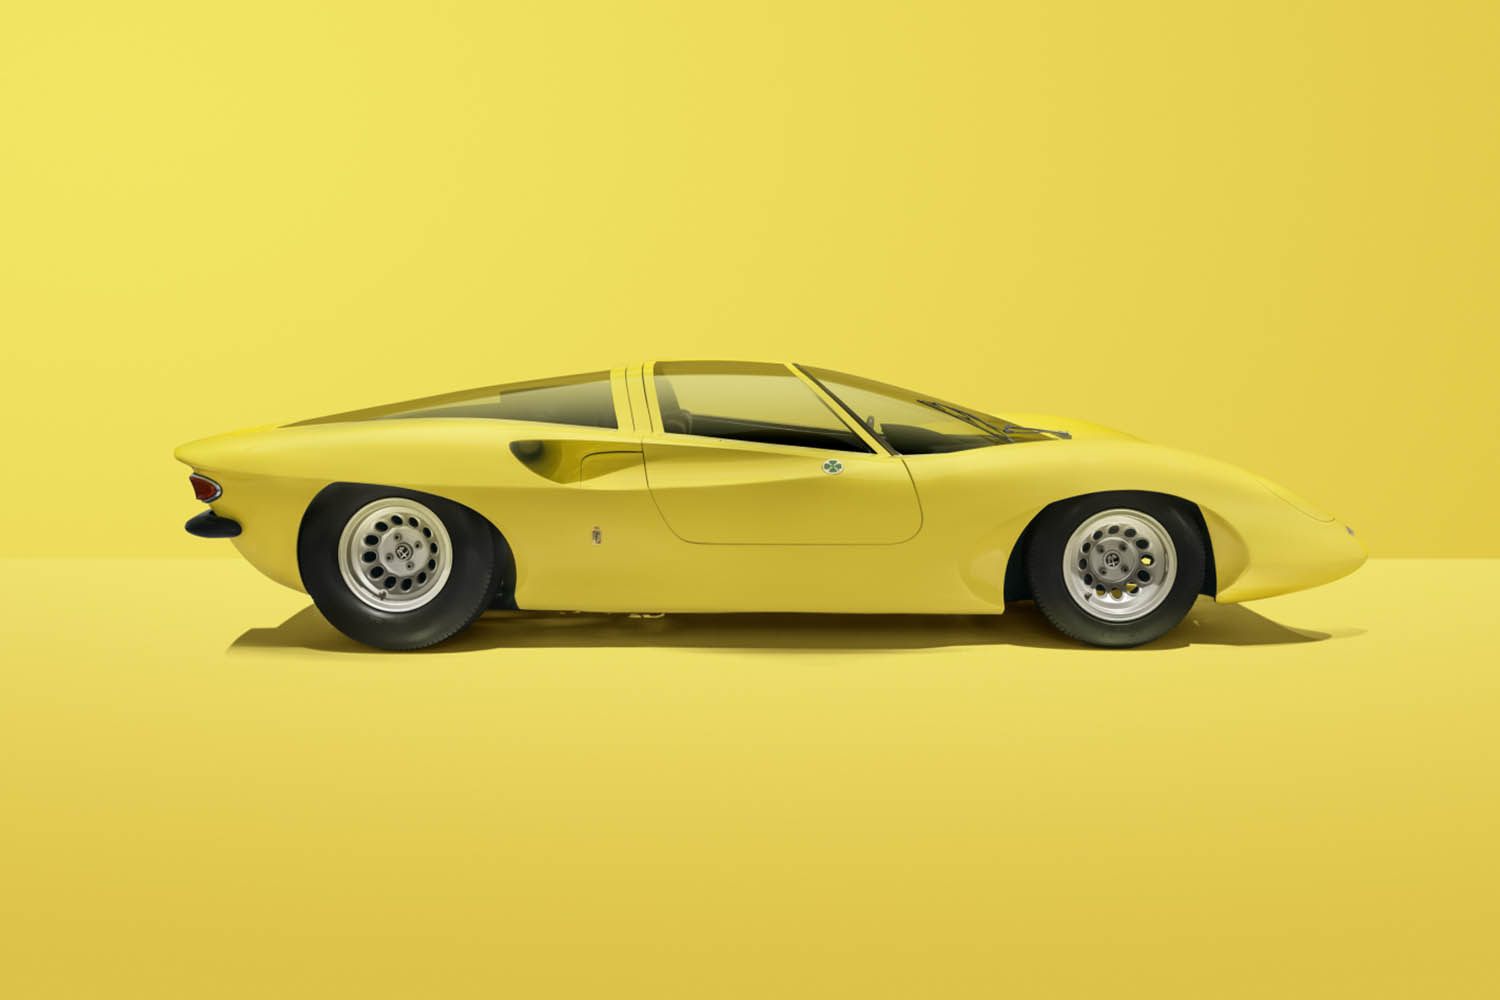 WEDGED_WONDERS_AFLA_ROMEO_33_COUPE_SPECIALE-SIDE-1423x1660.jpg